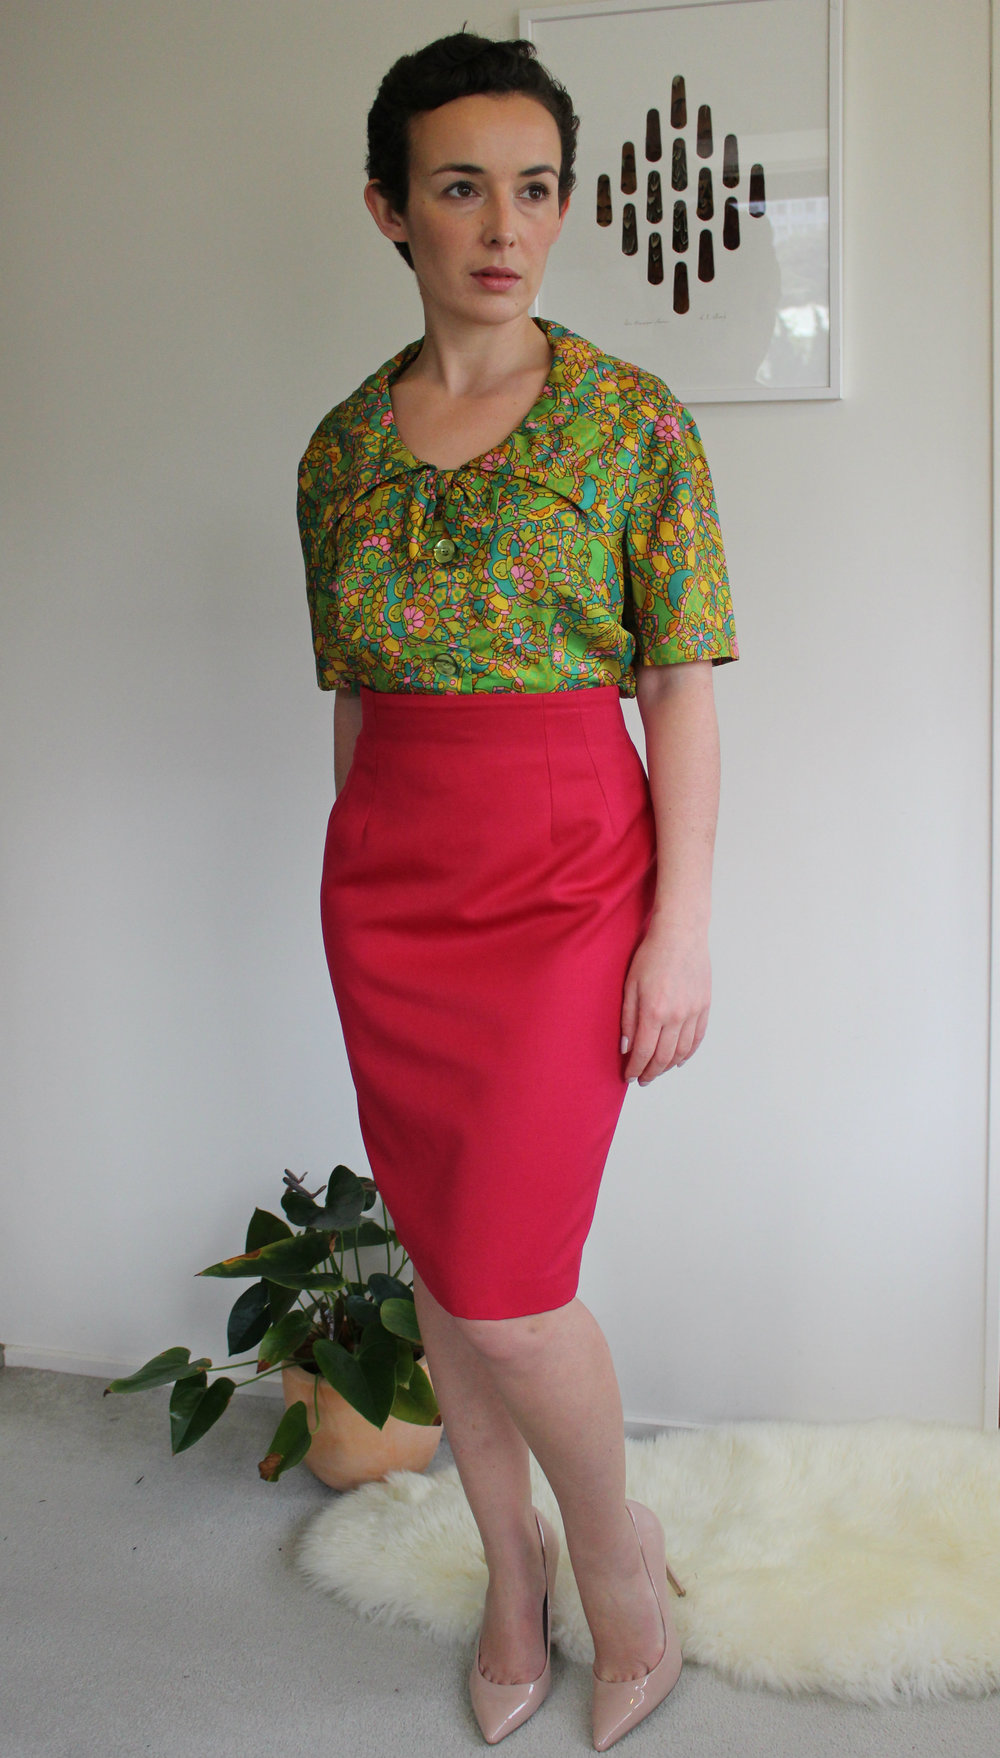 Skirt: Gilles Dewavrin via SaveMart; Blouse: Lorna Cooper for Selby via Thrift